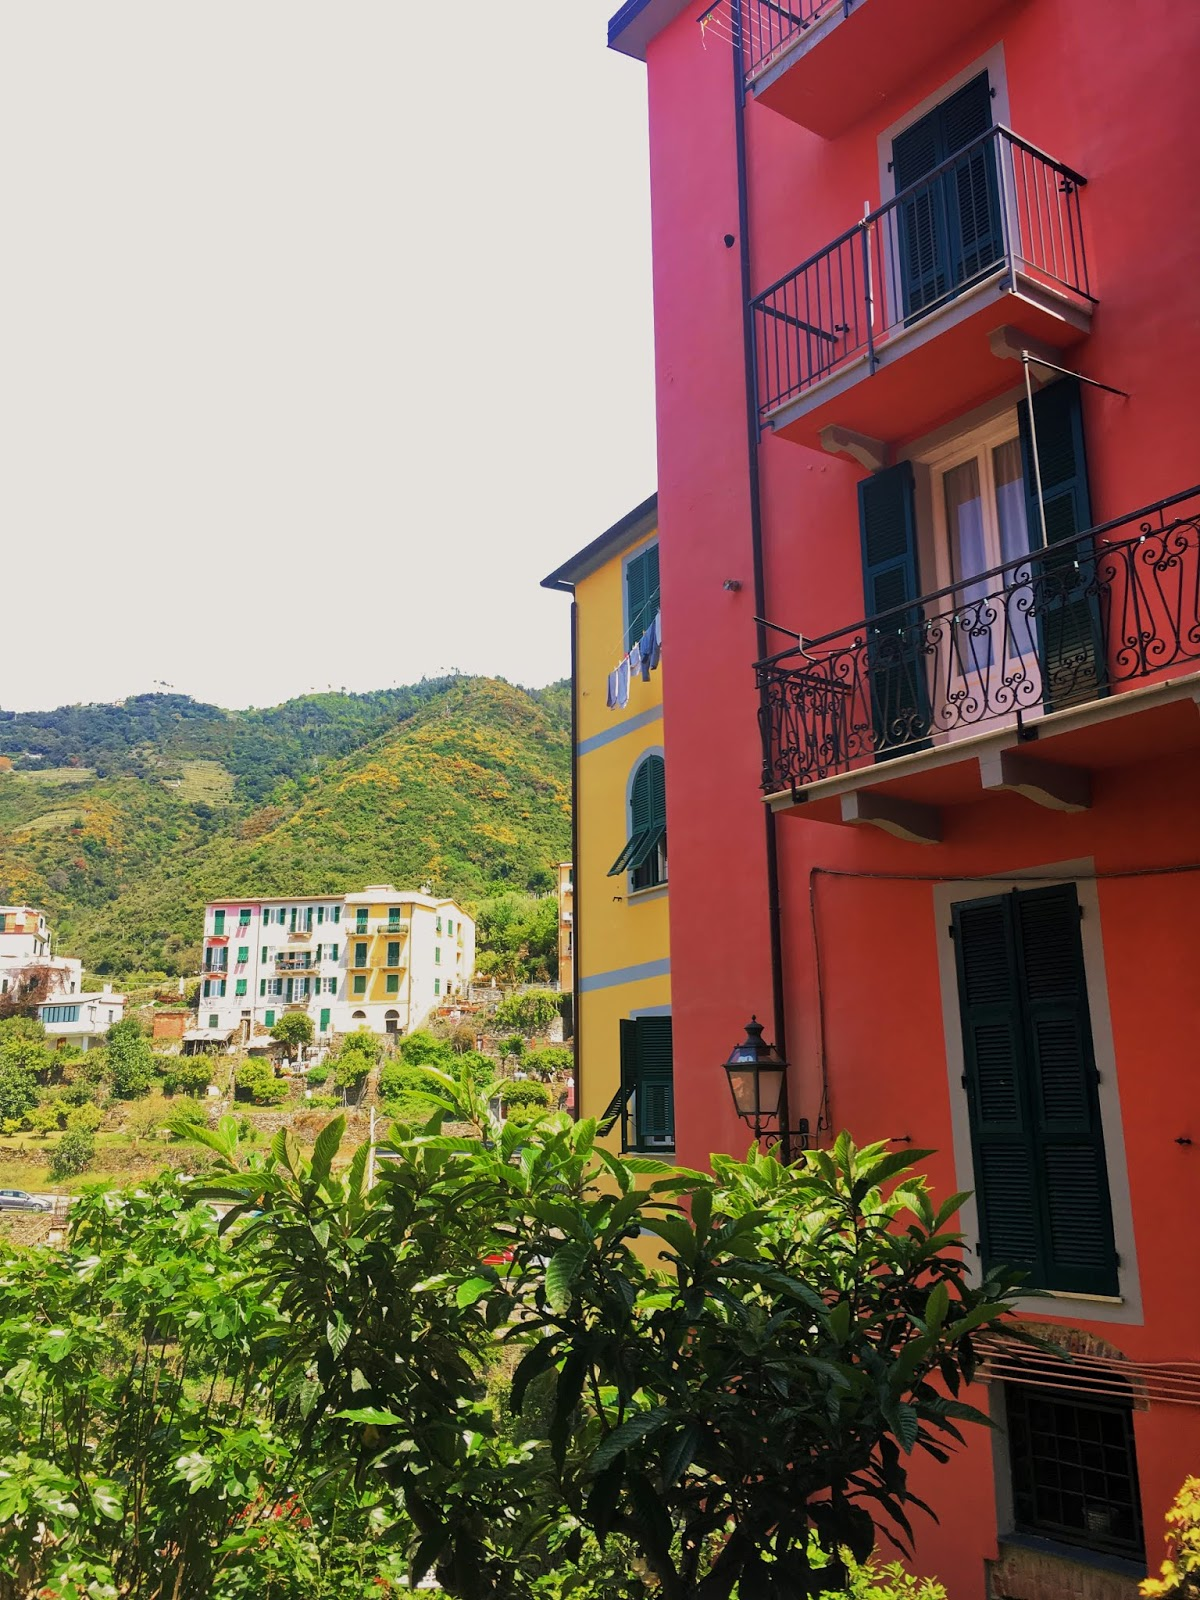 One Day in Cinque Terre, Liguria